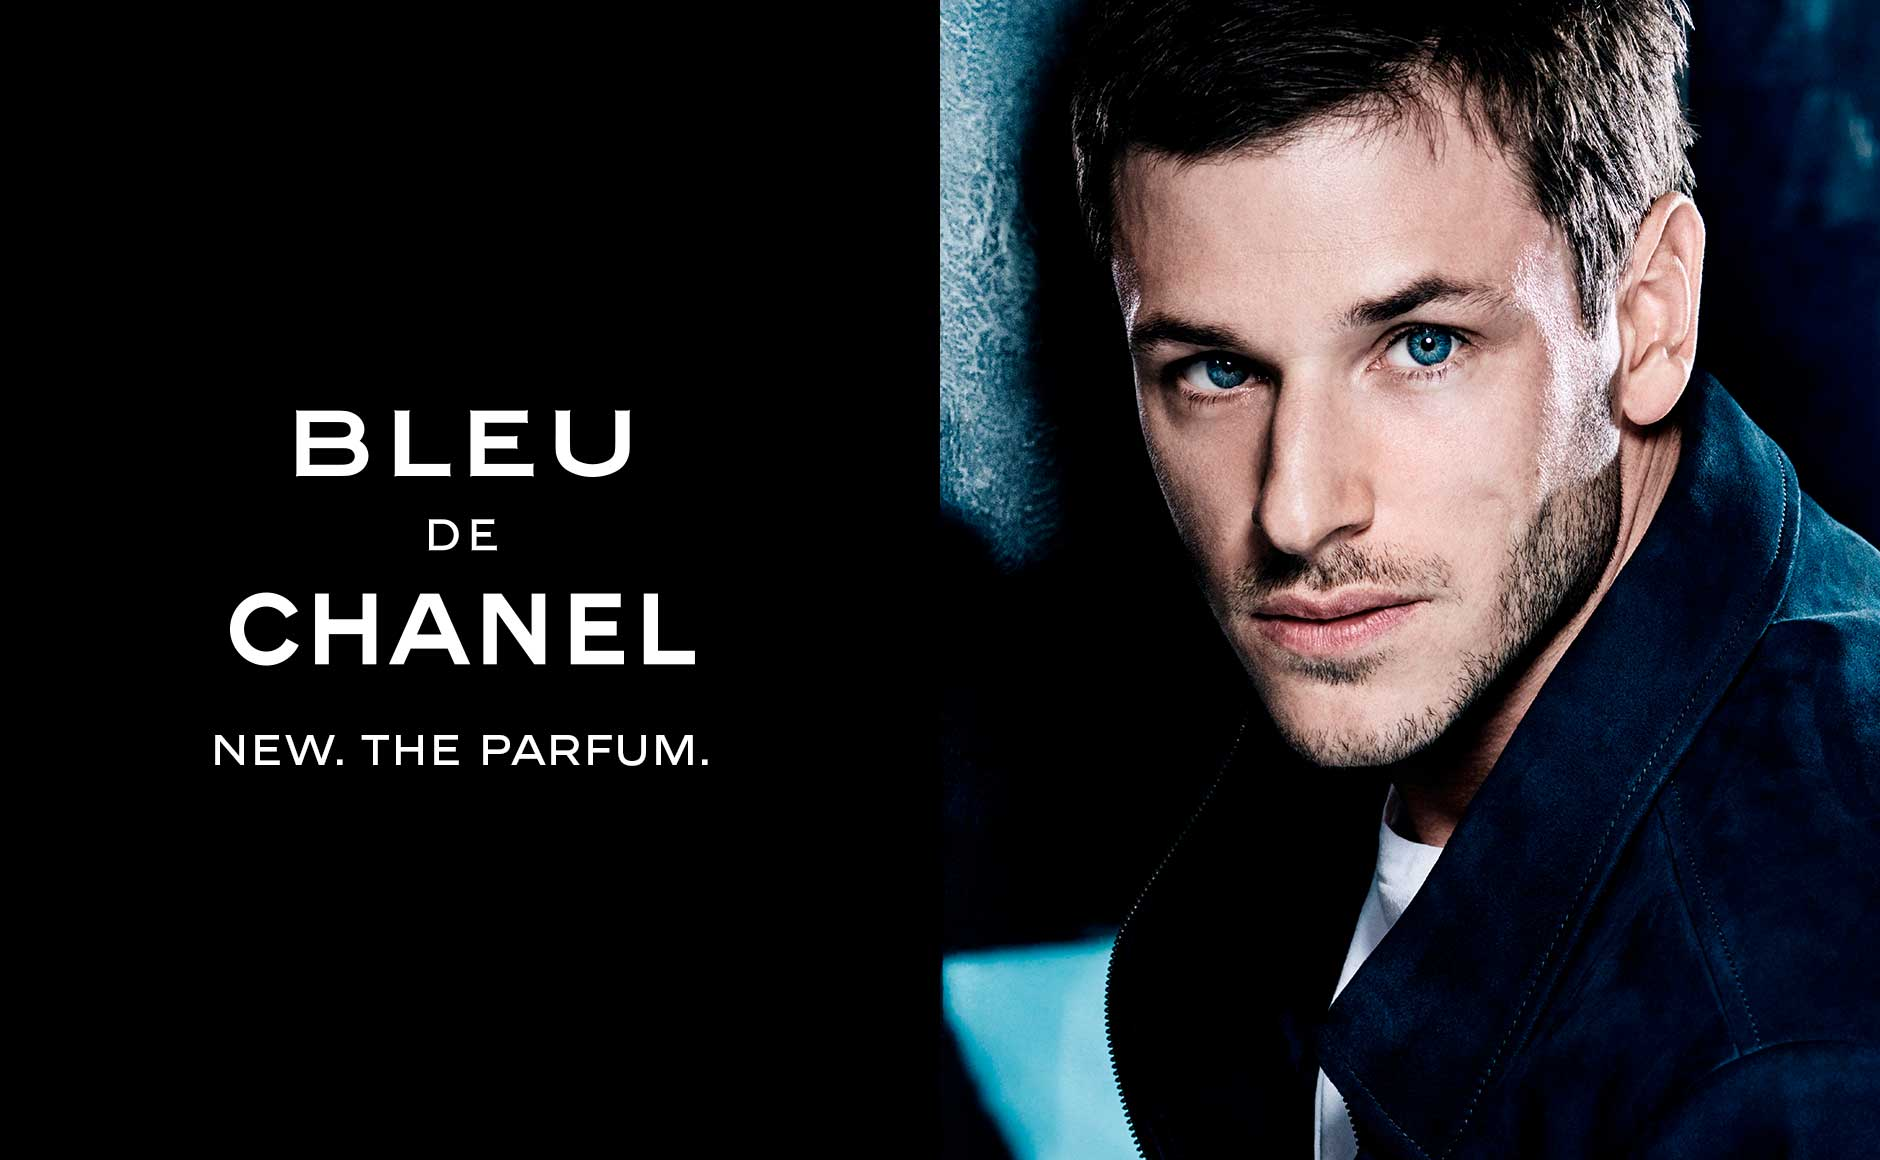 Blue De Chanel - New. The Parfum.